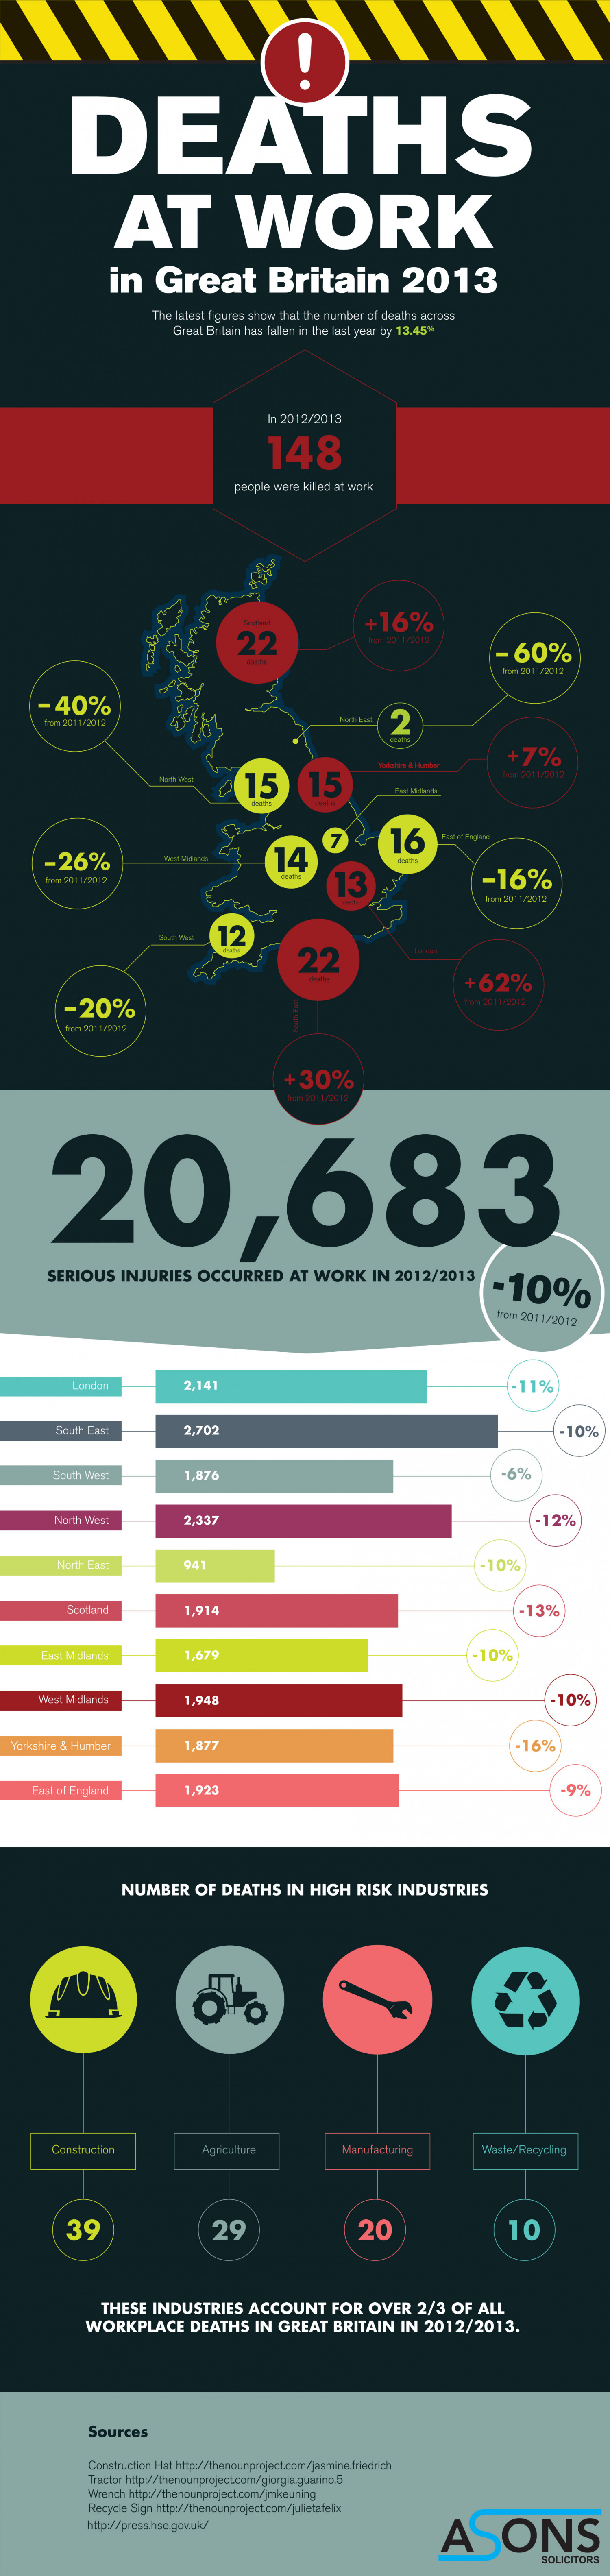 Deaths at Work Infographic